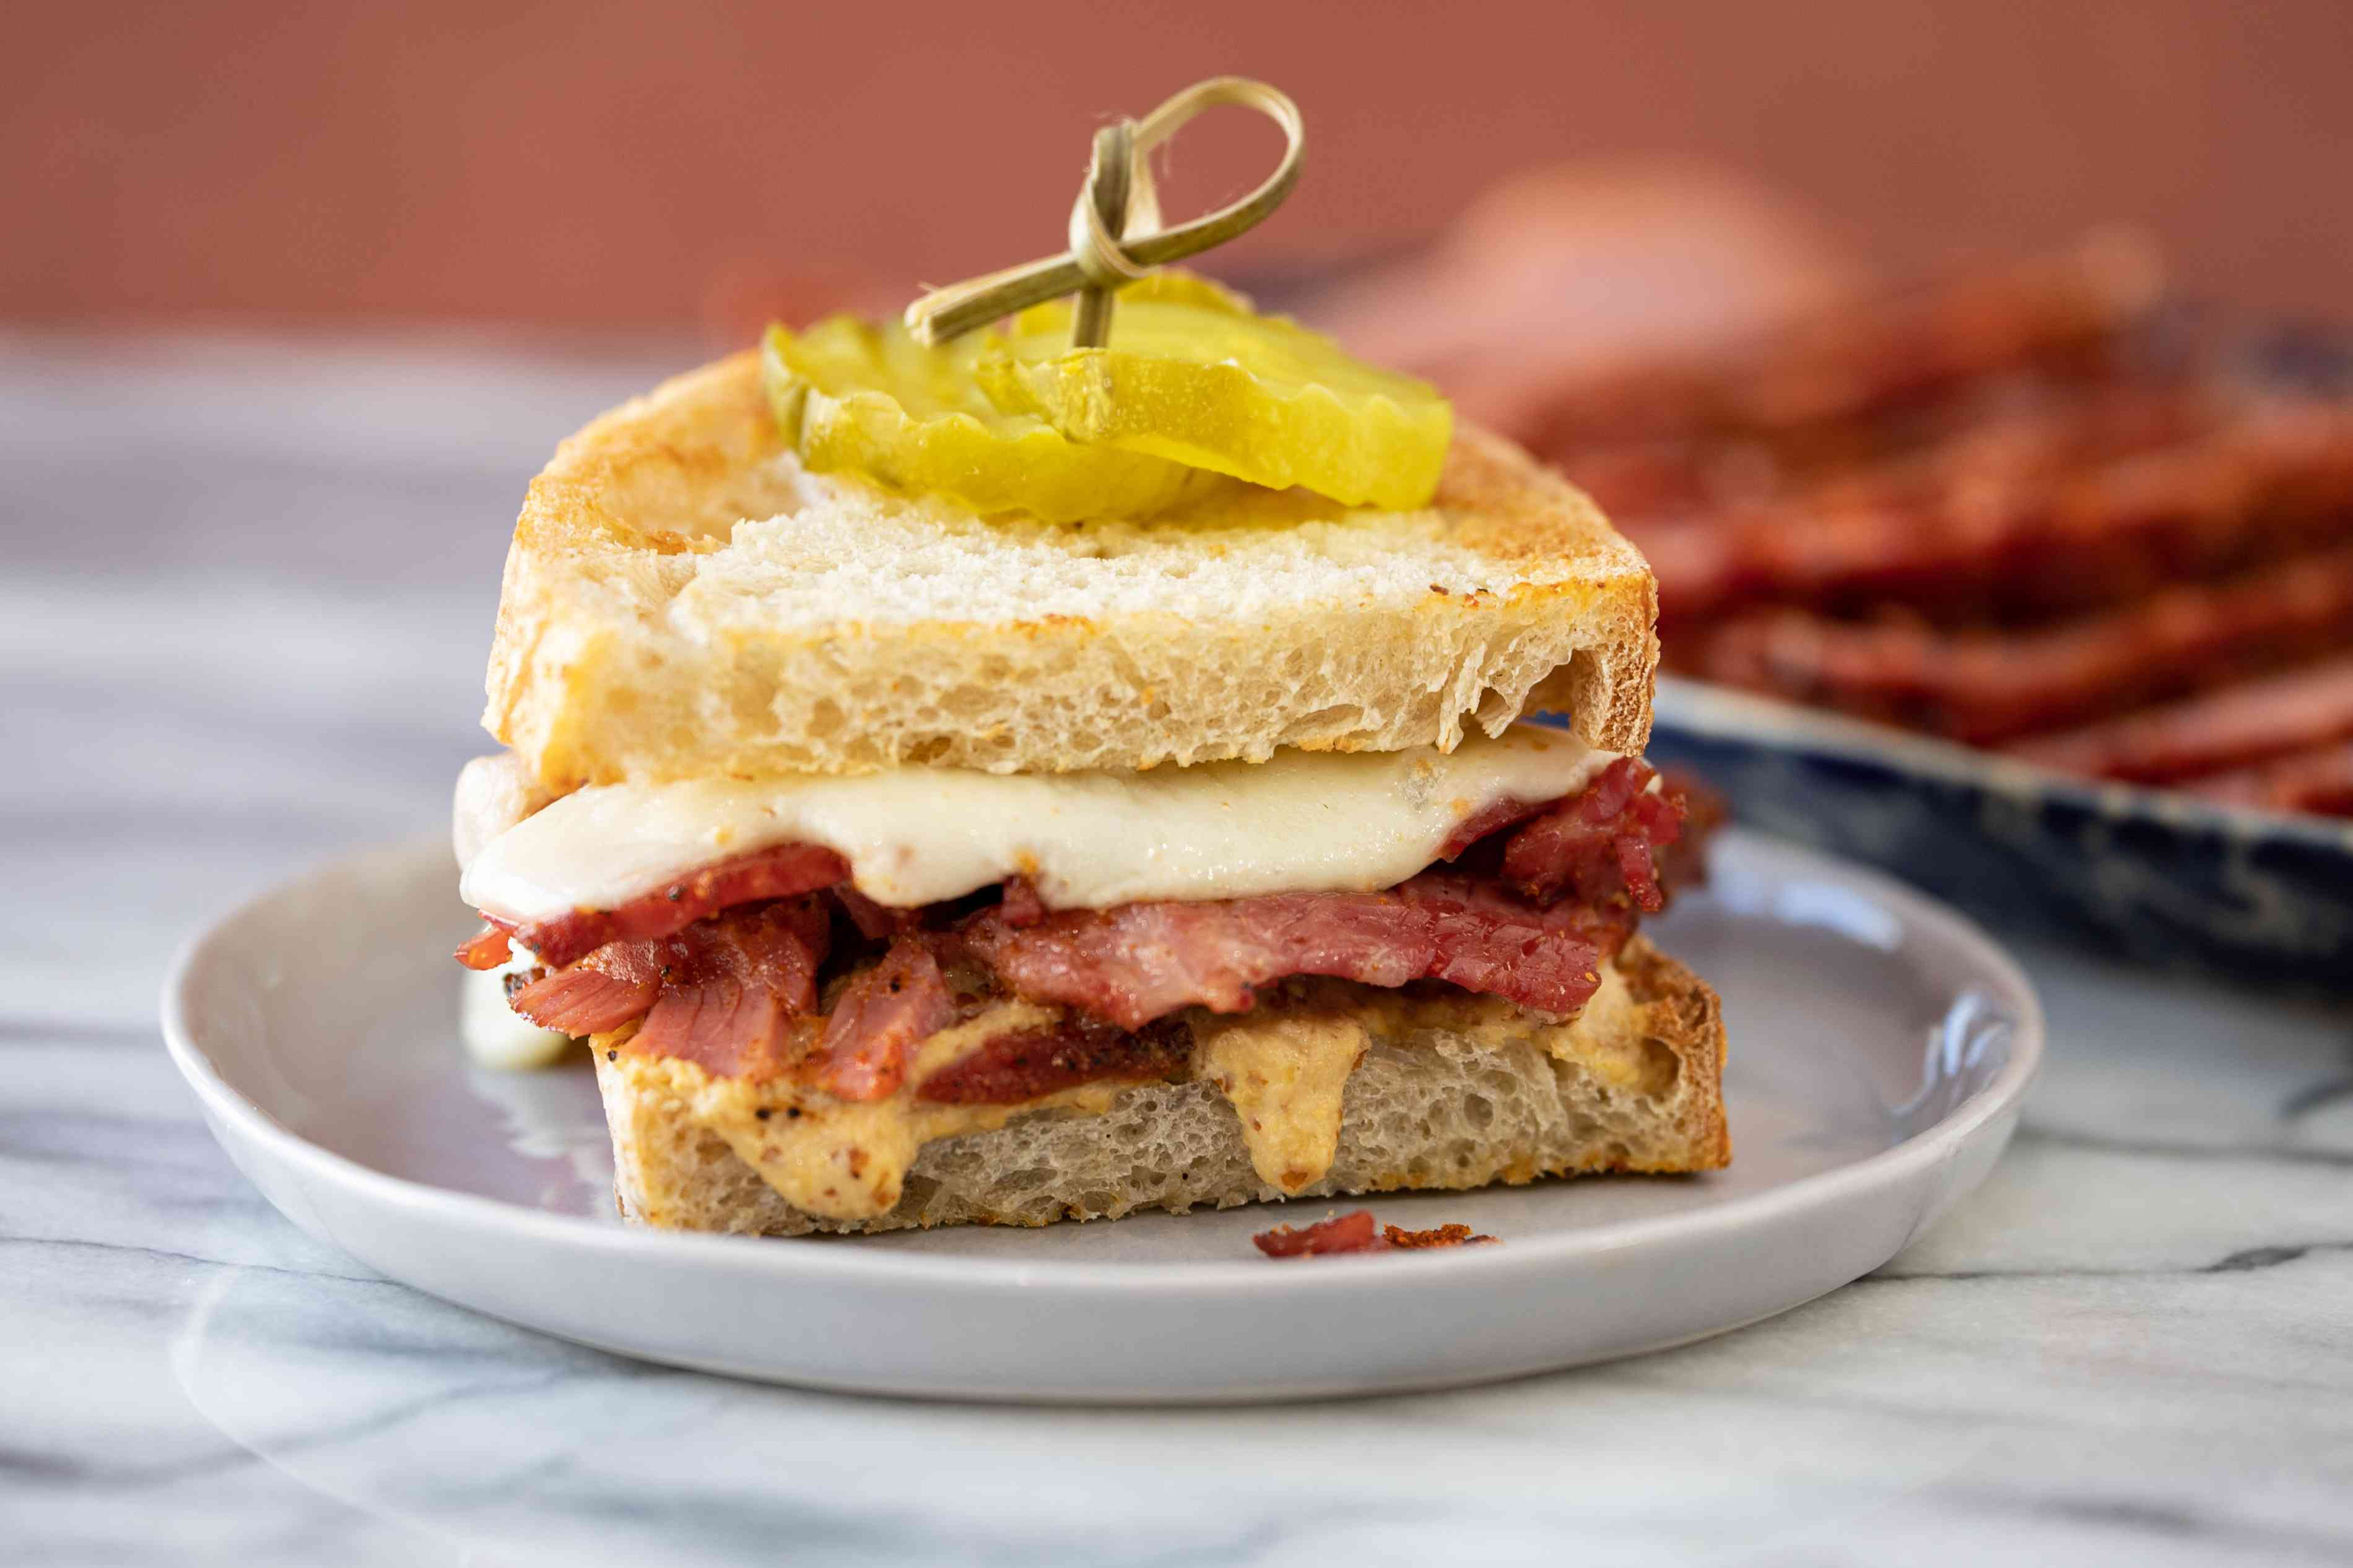 sandwich made with homemade Instant Pot pastrami.